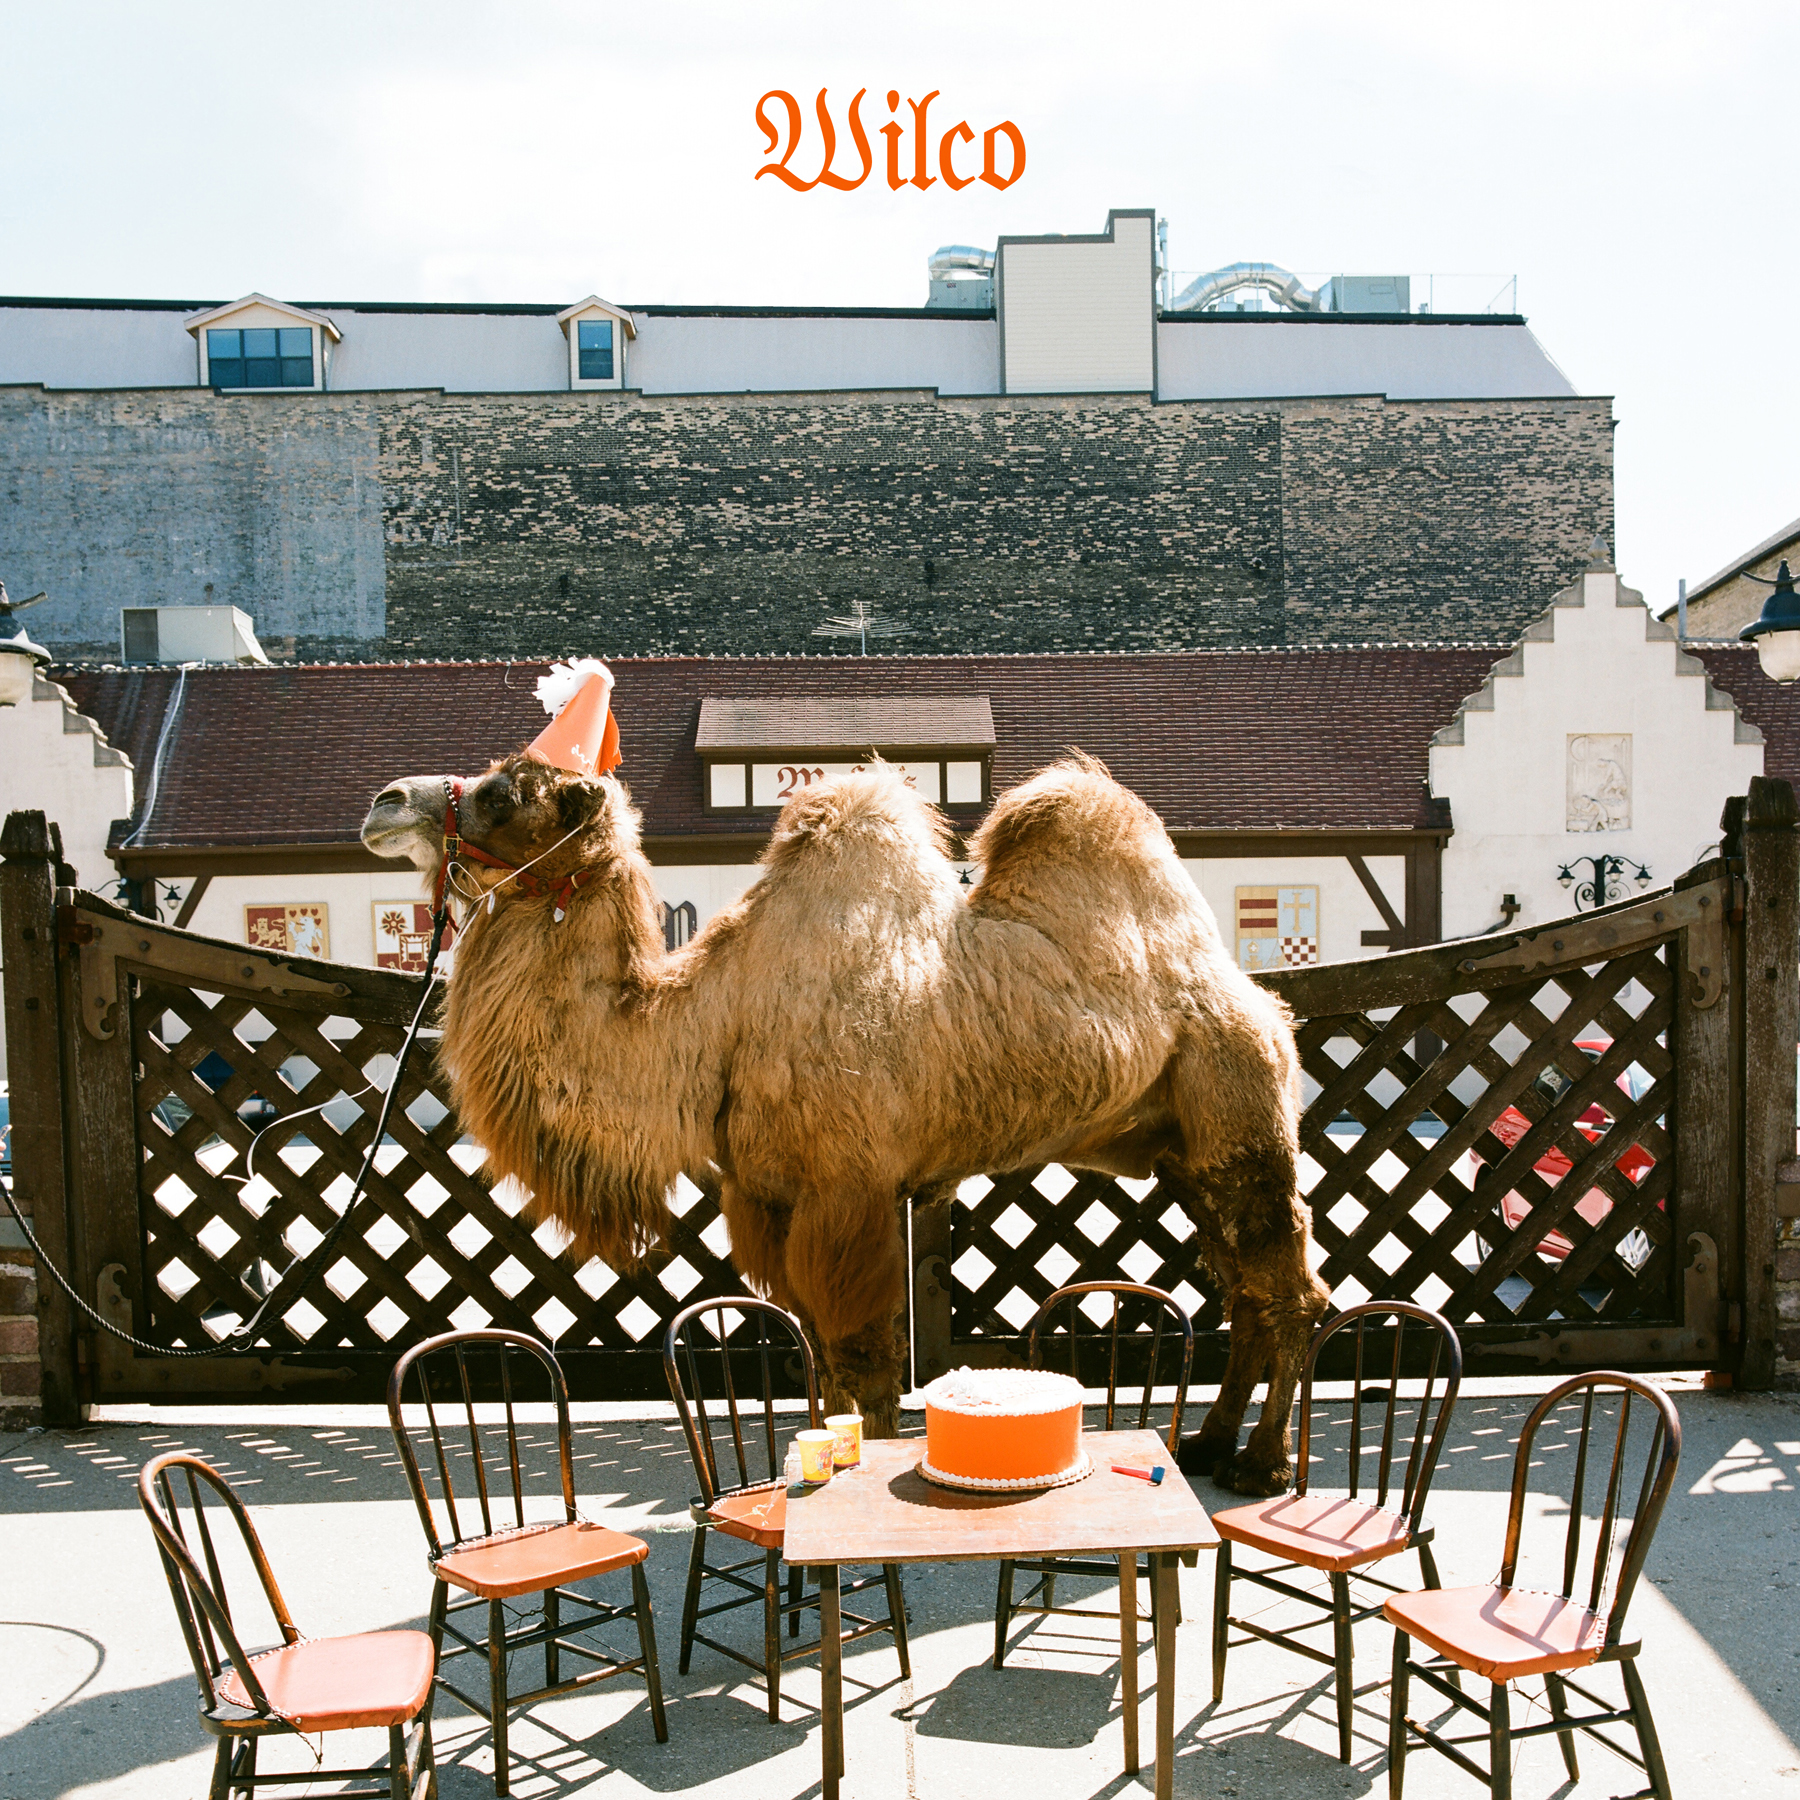 WIlco (The Album) cover photo location Maders Restaurant